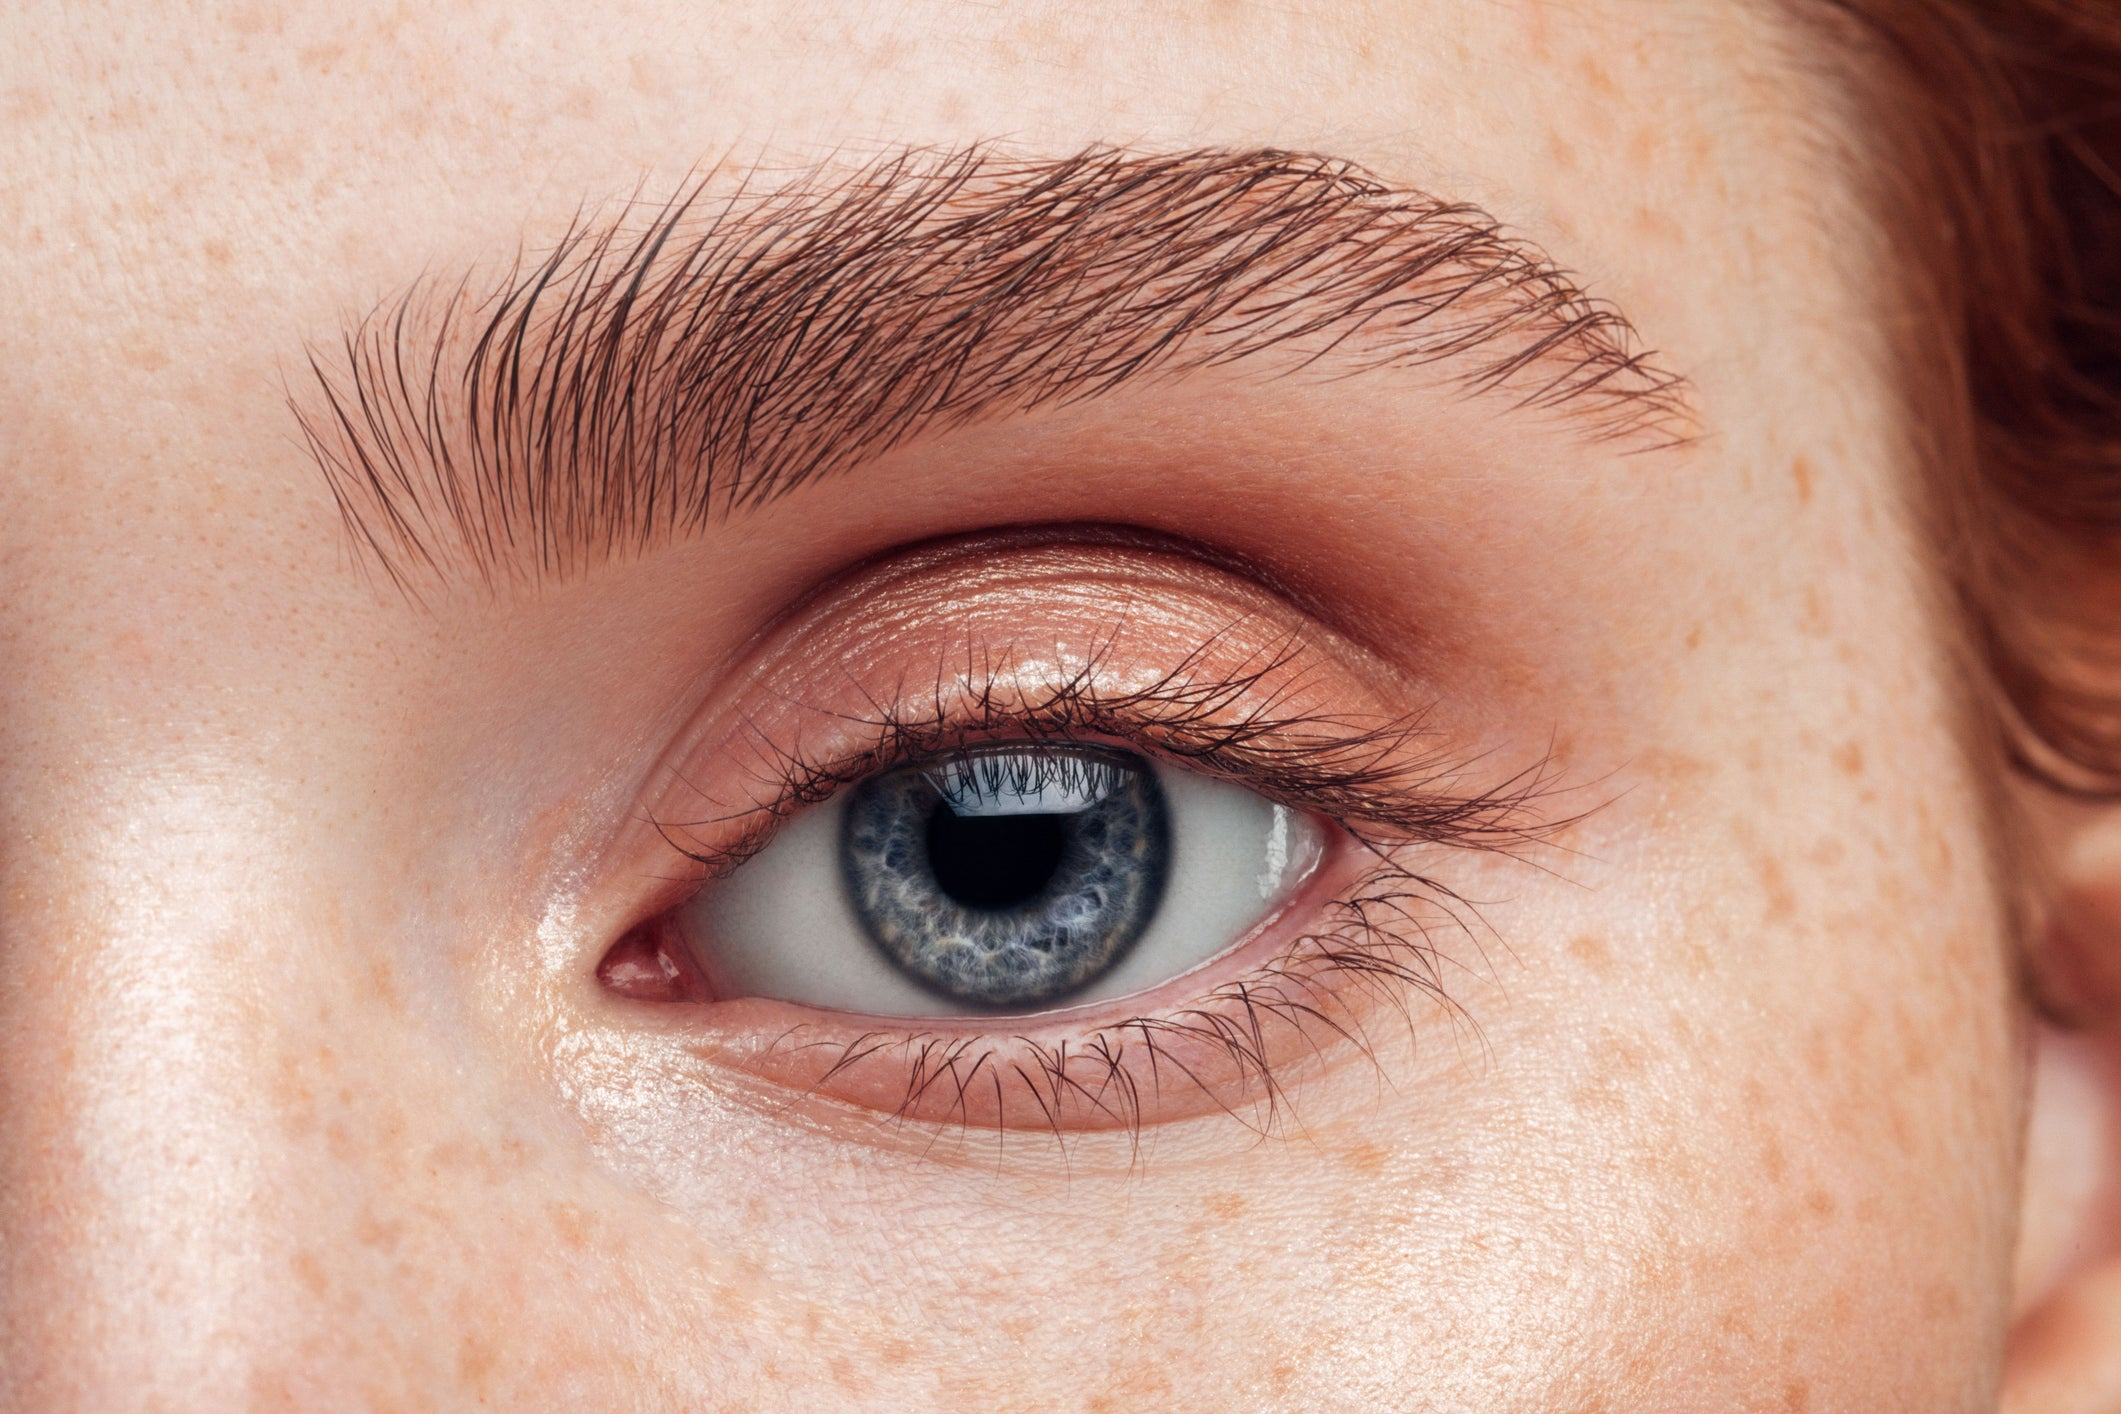 Fda Approves First Ever Treatment For Thyroid Eye Disease The